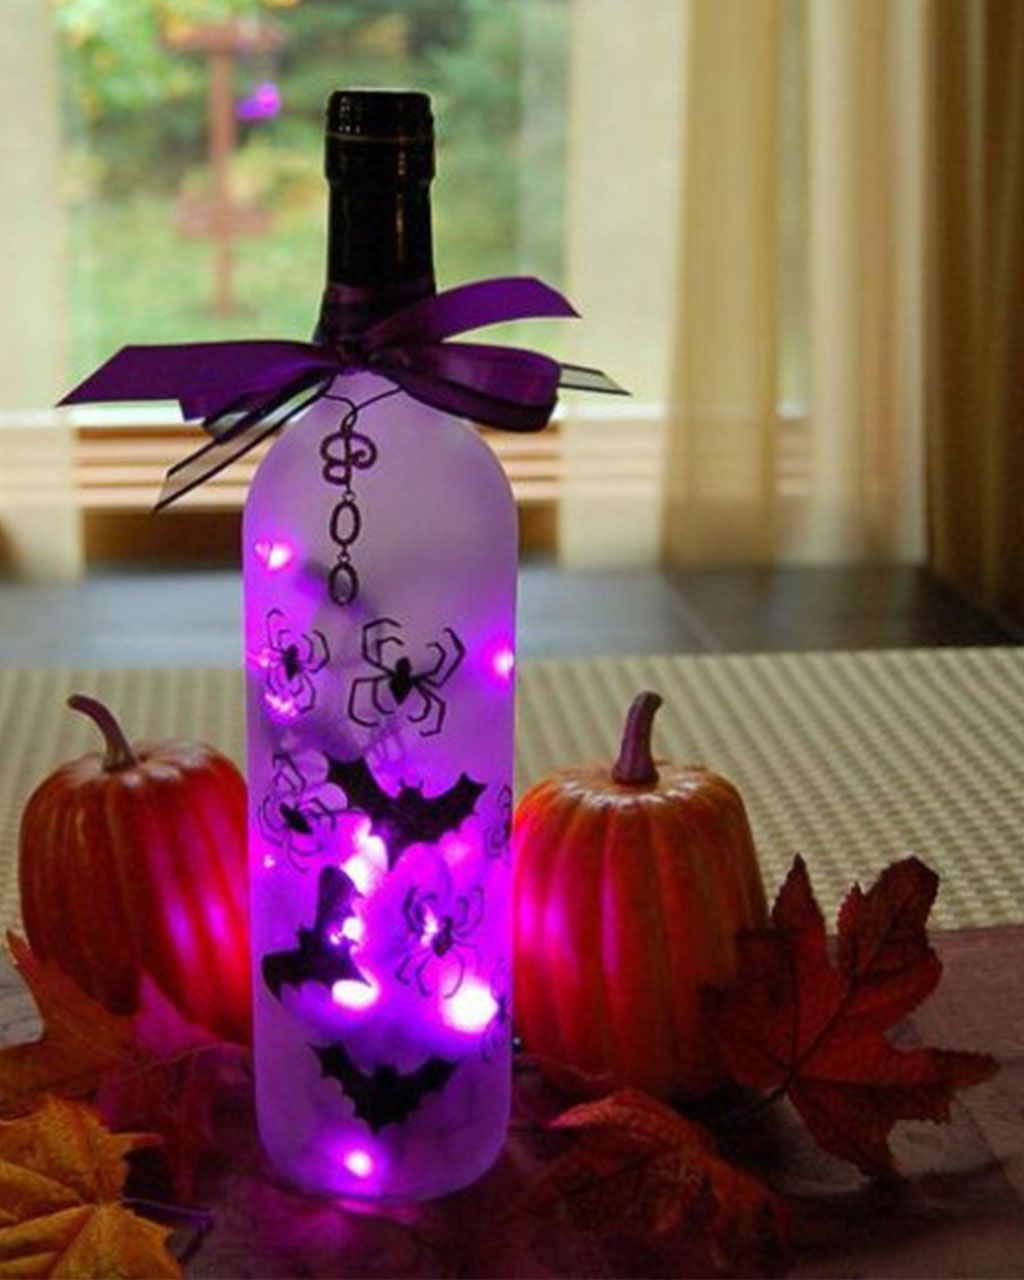 Halloween decor 2014 - 50 Indoor Decorations That Take Halloween To The Next Level